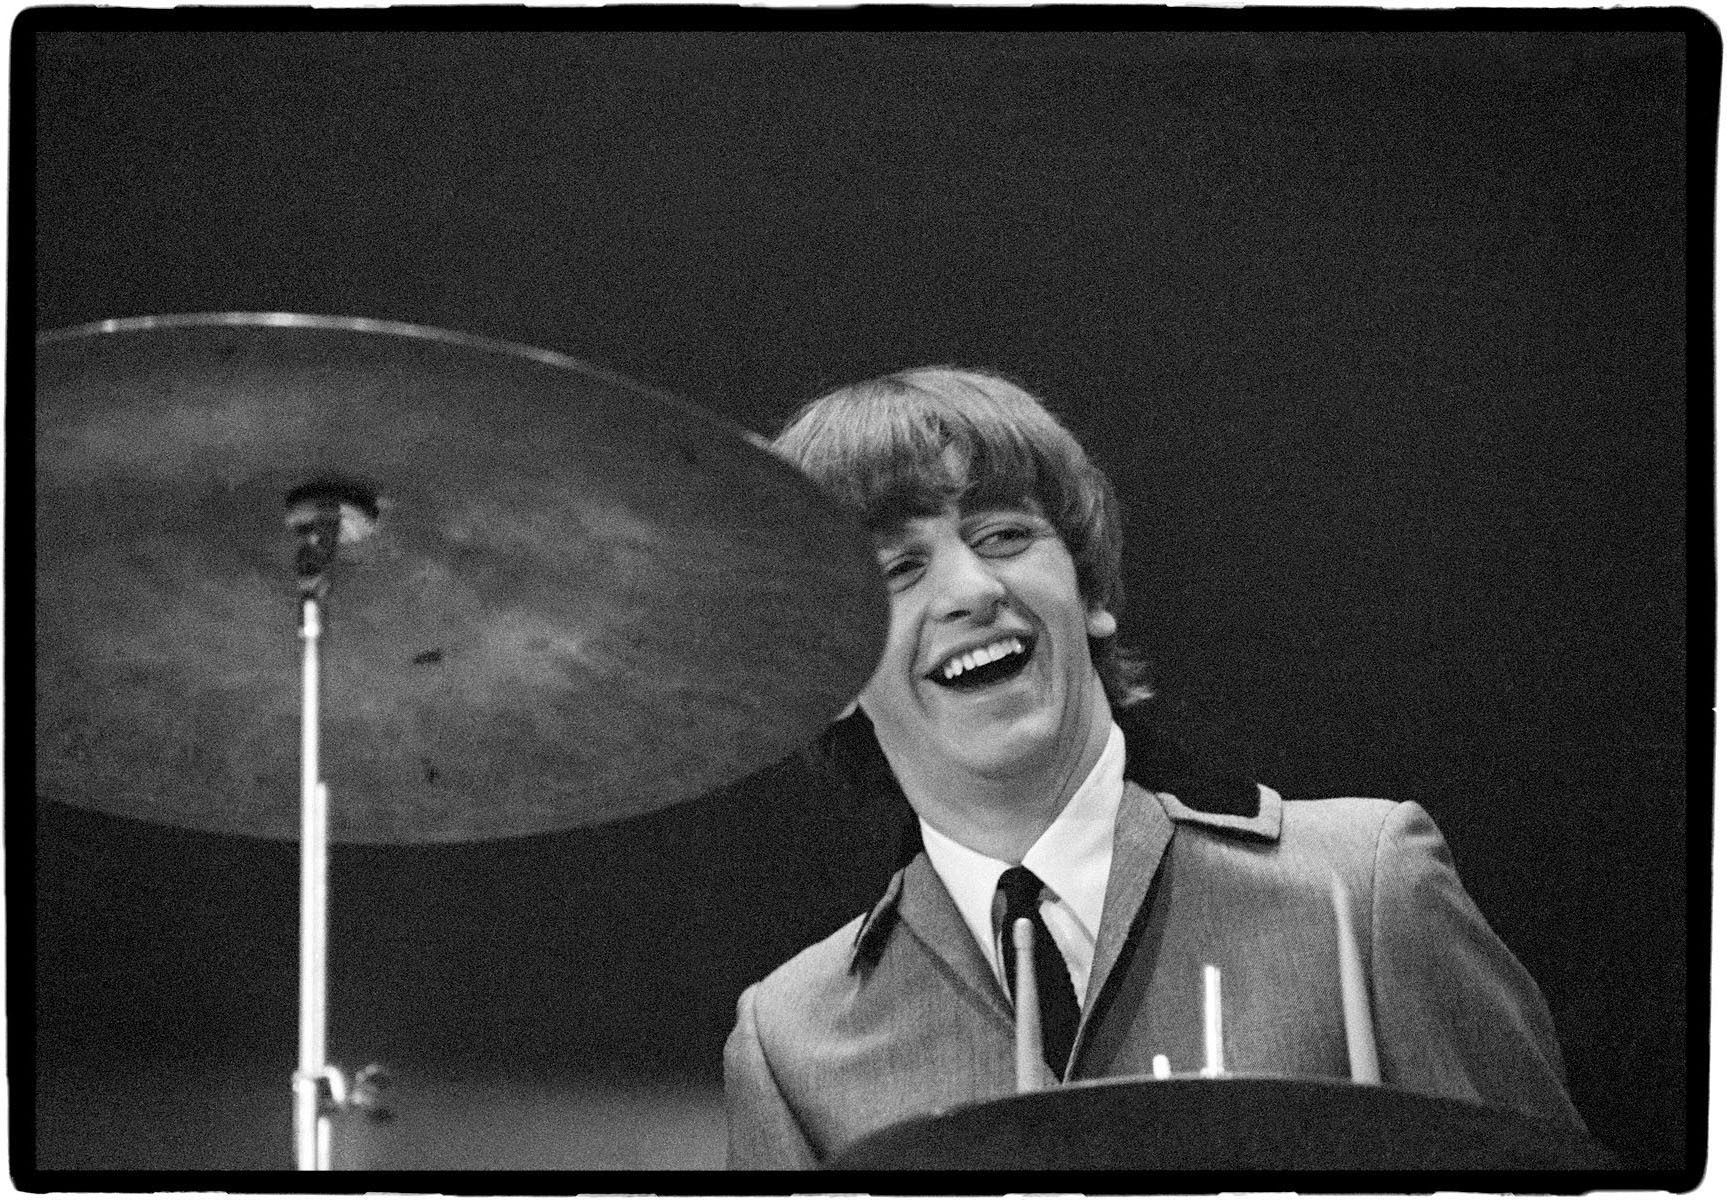 Ringo Starr Beatles 1st US Concert The Coliseum Washington DC 1964